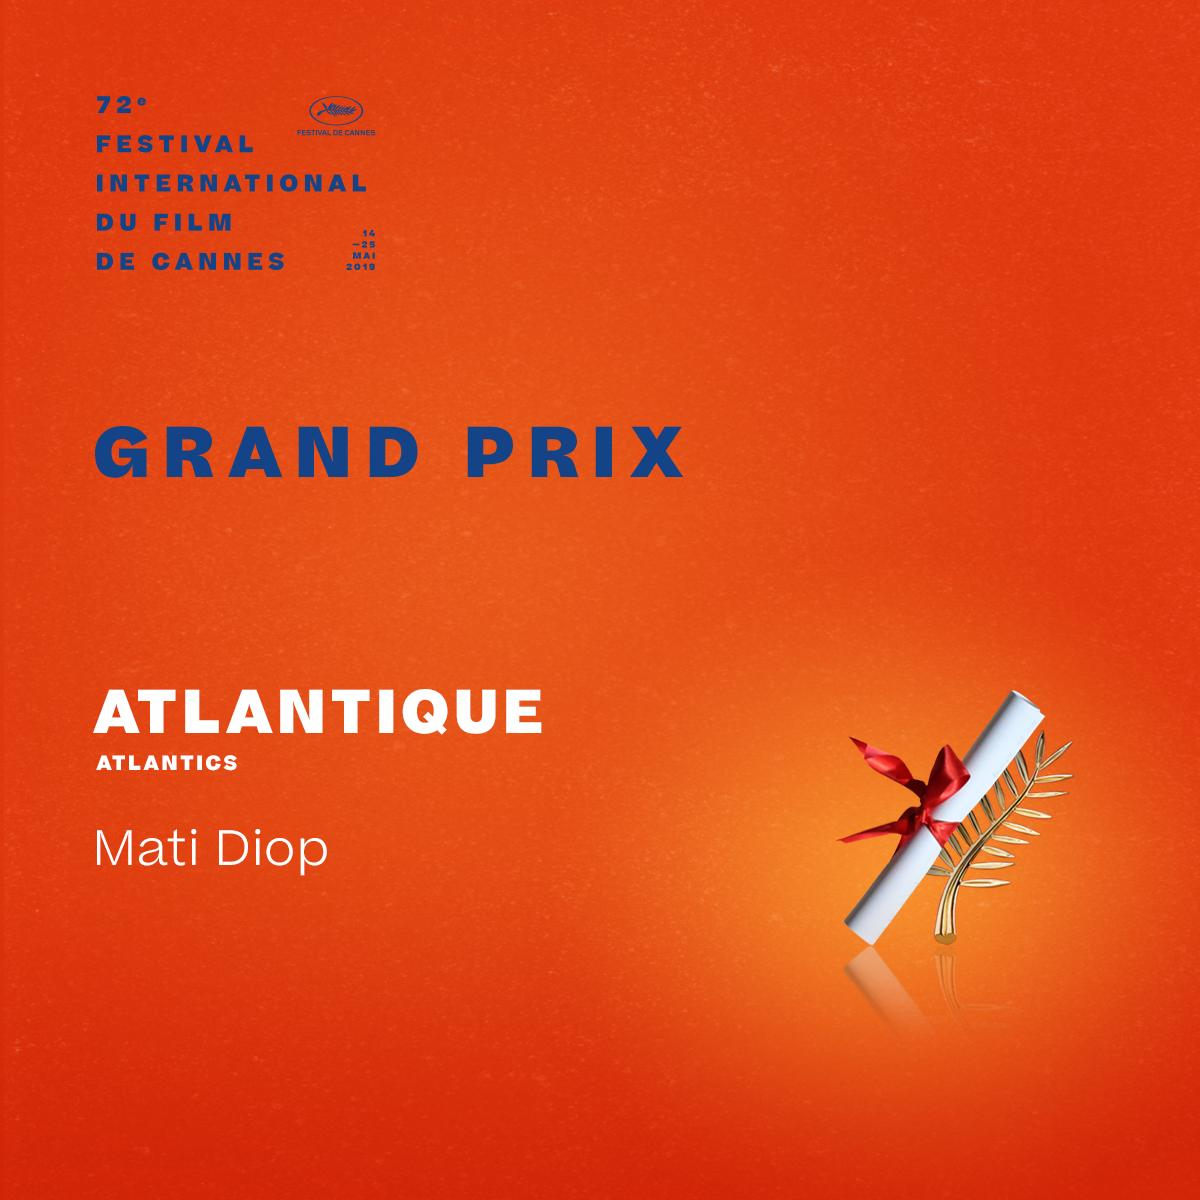 And the Grand Prix winner is… #Atlantique by Mati Diop  #Cannes2019 #Awards https://t.co/7XFlO3IM3S